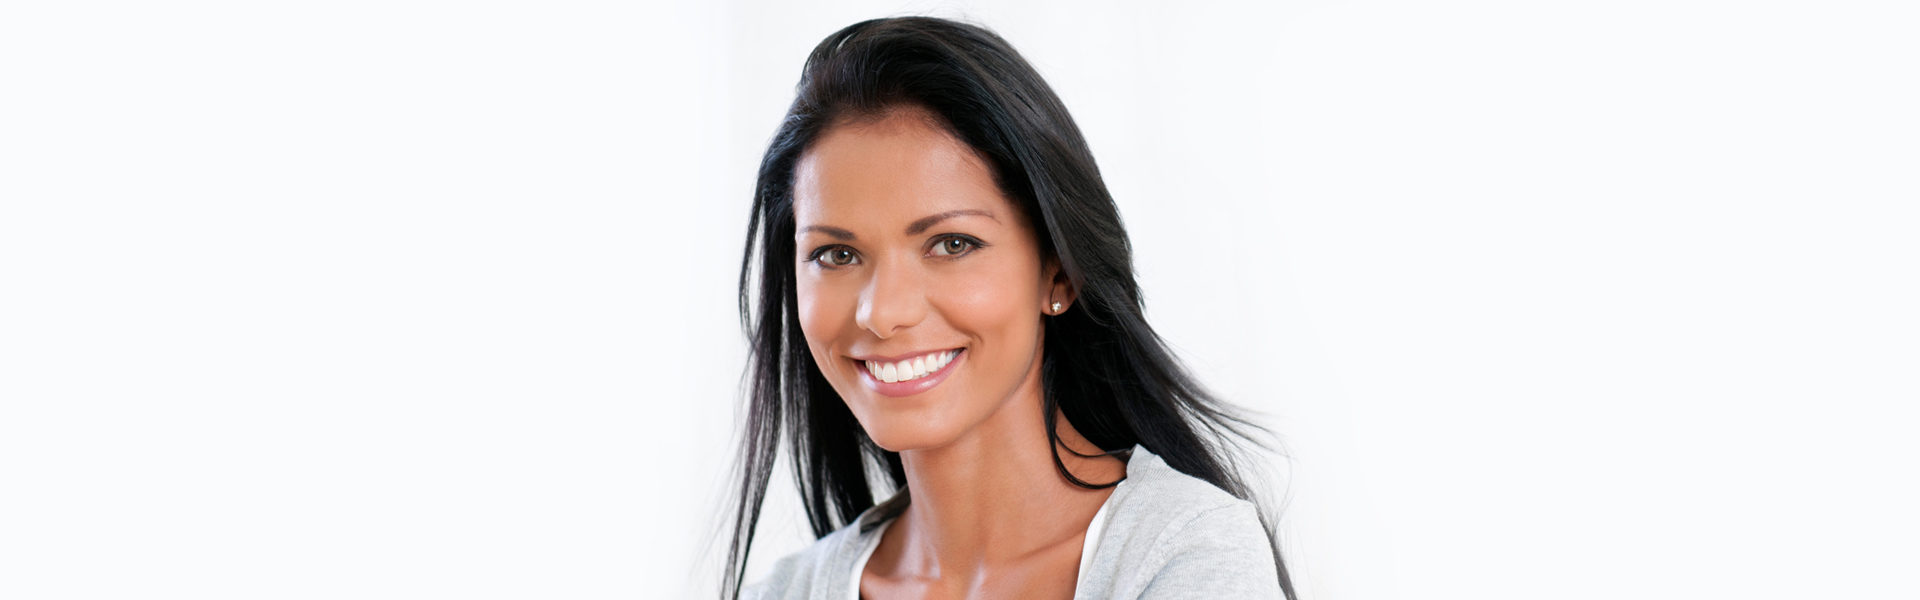 Teeth Whitening Services in Ellicott City, MD